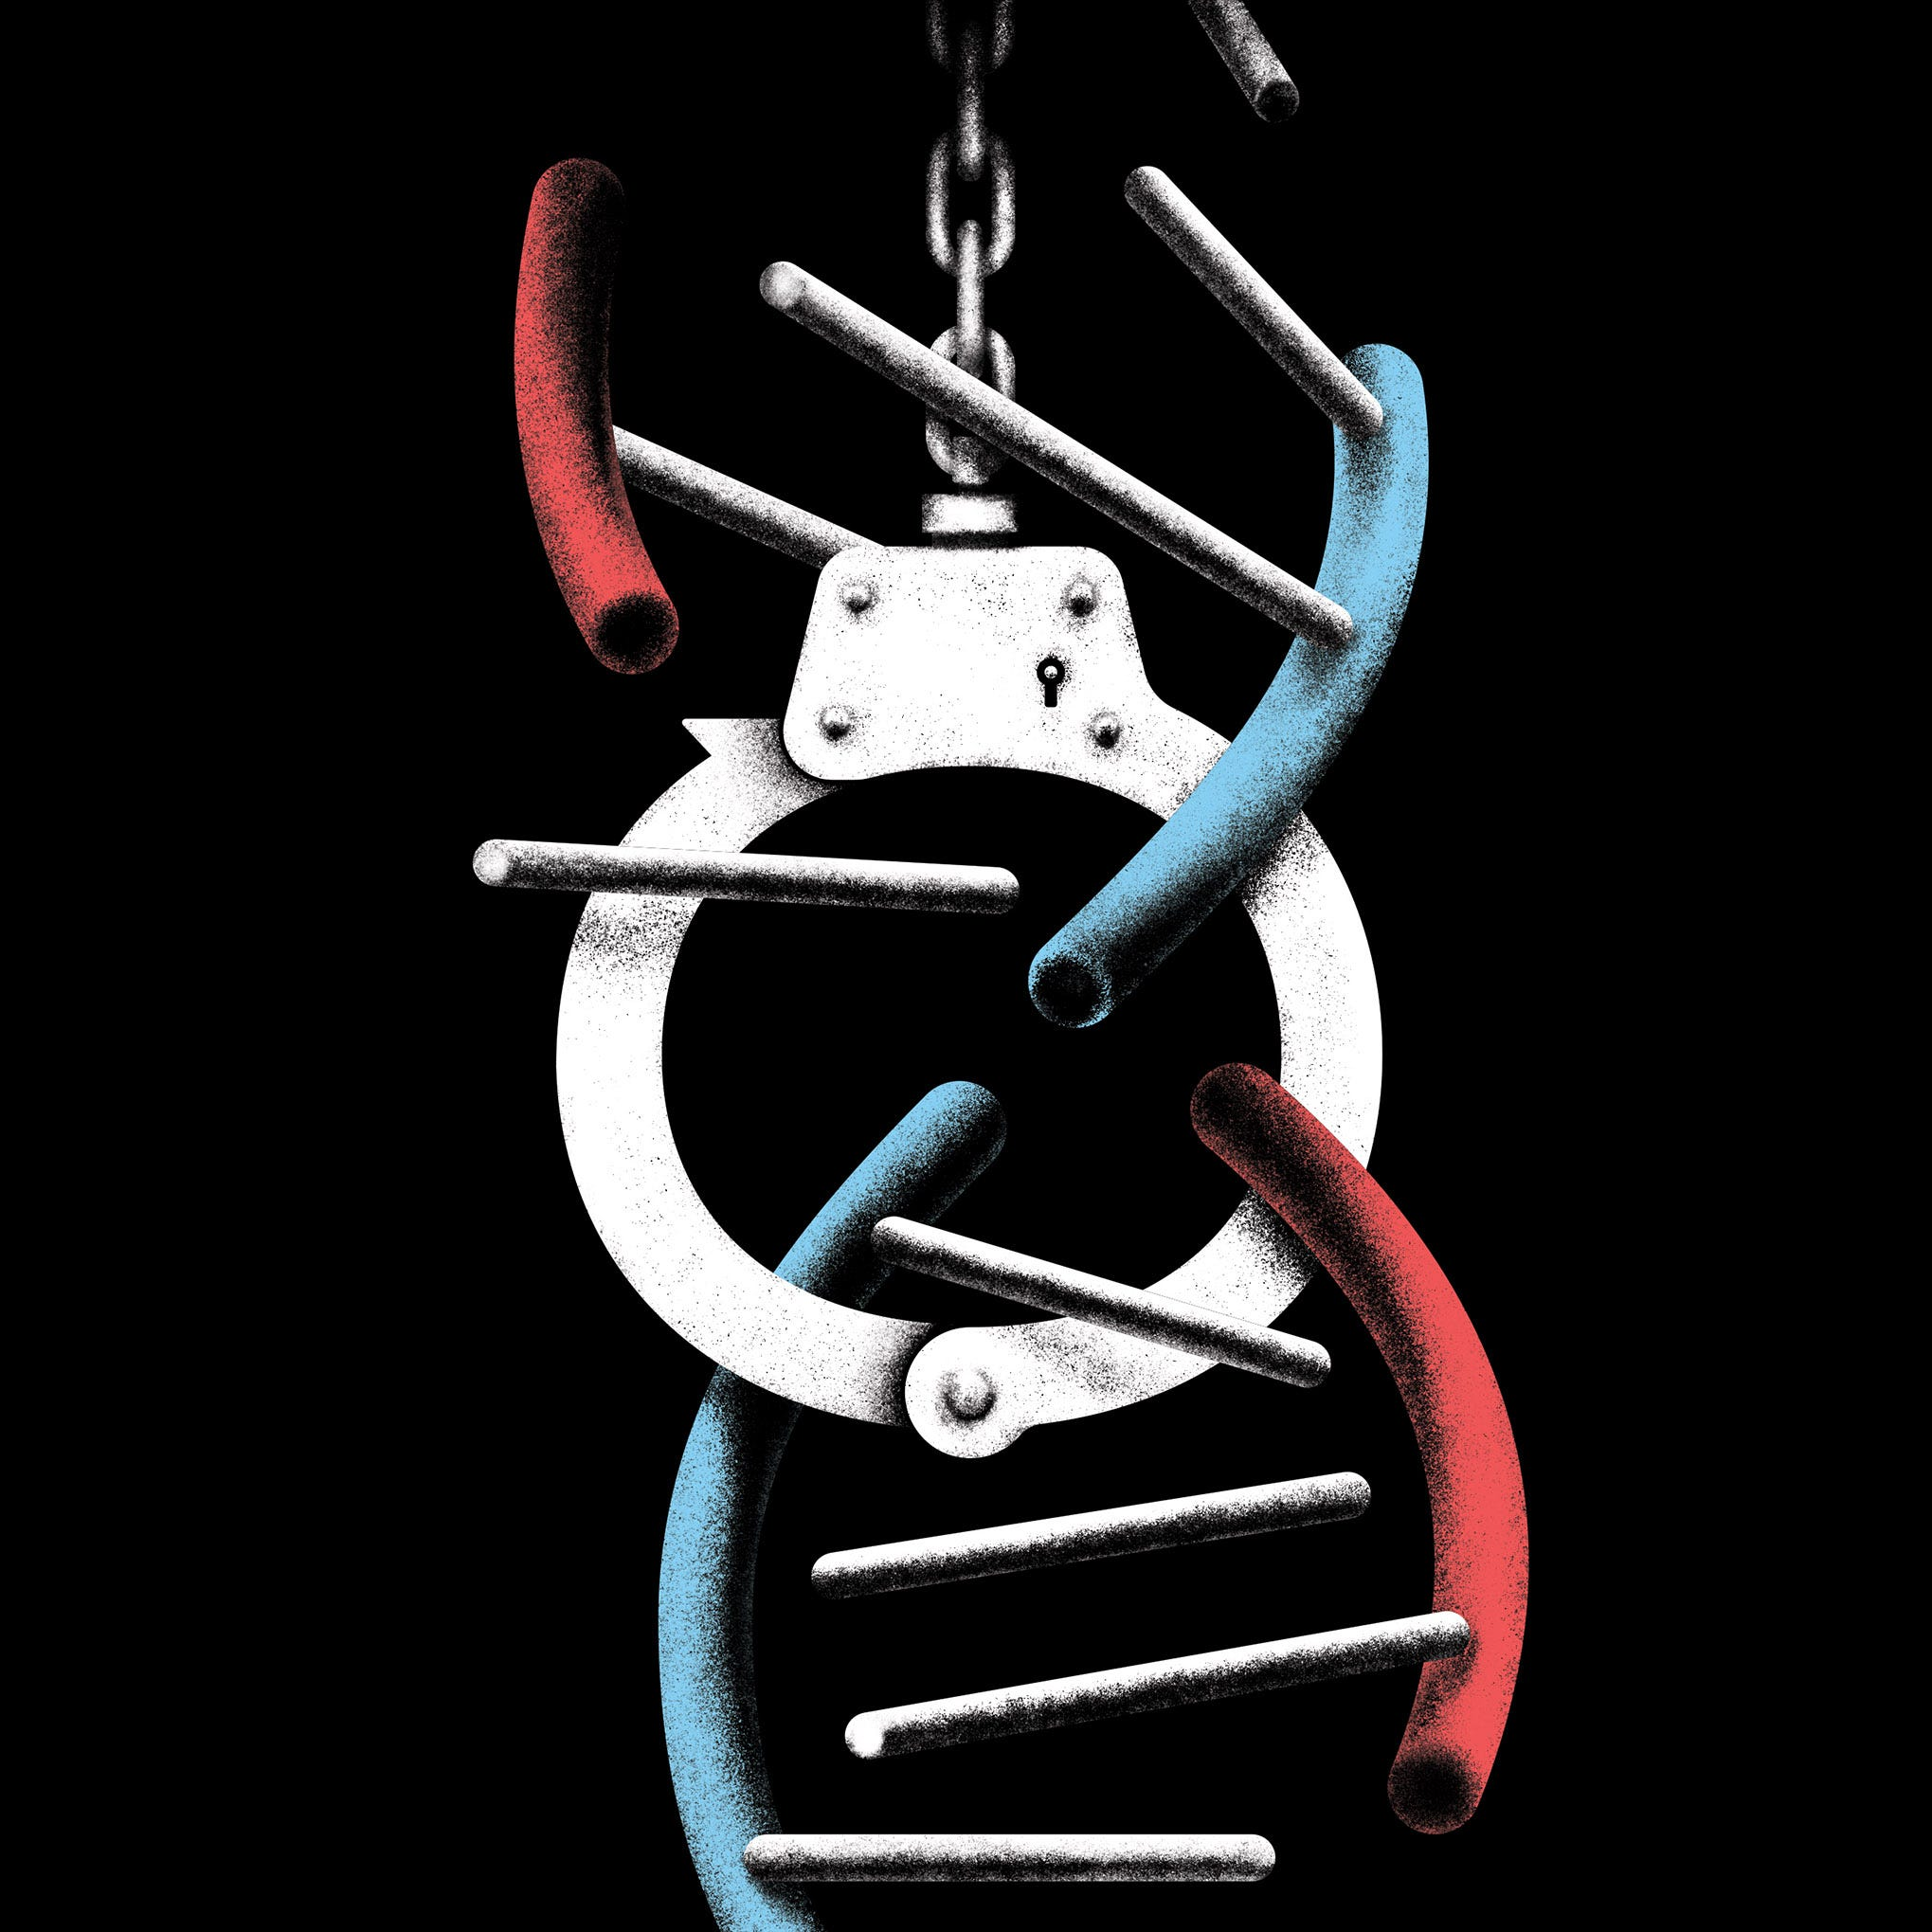 EDITORIAL: Fixing the flaws in Ohio's DNA collection law